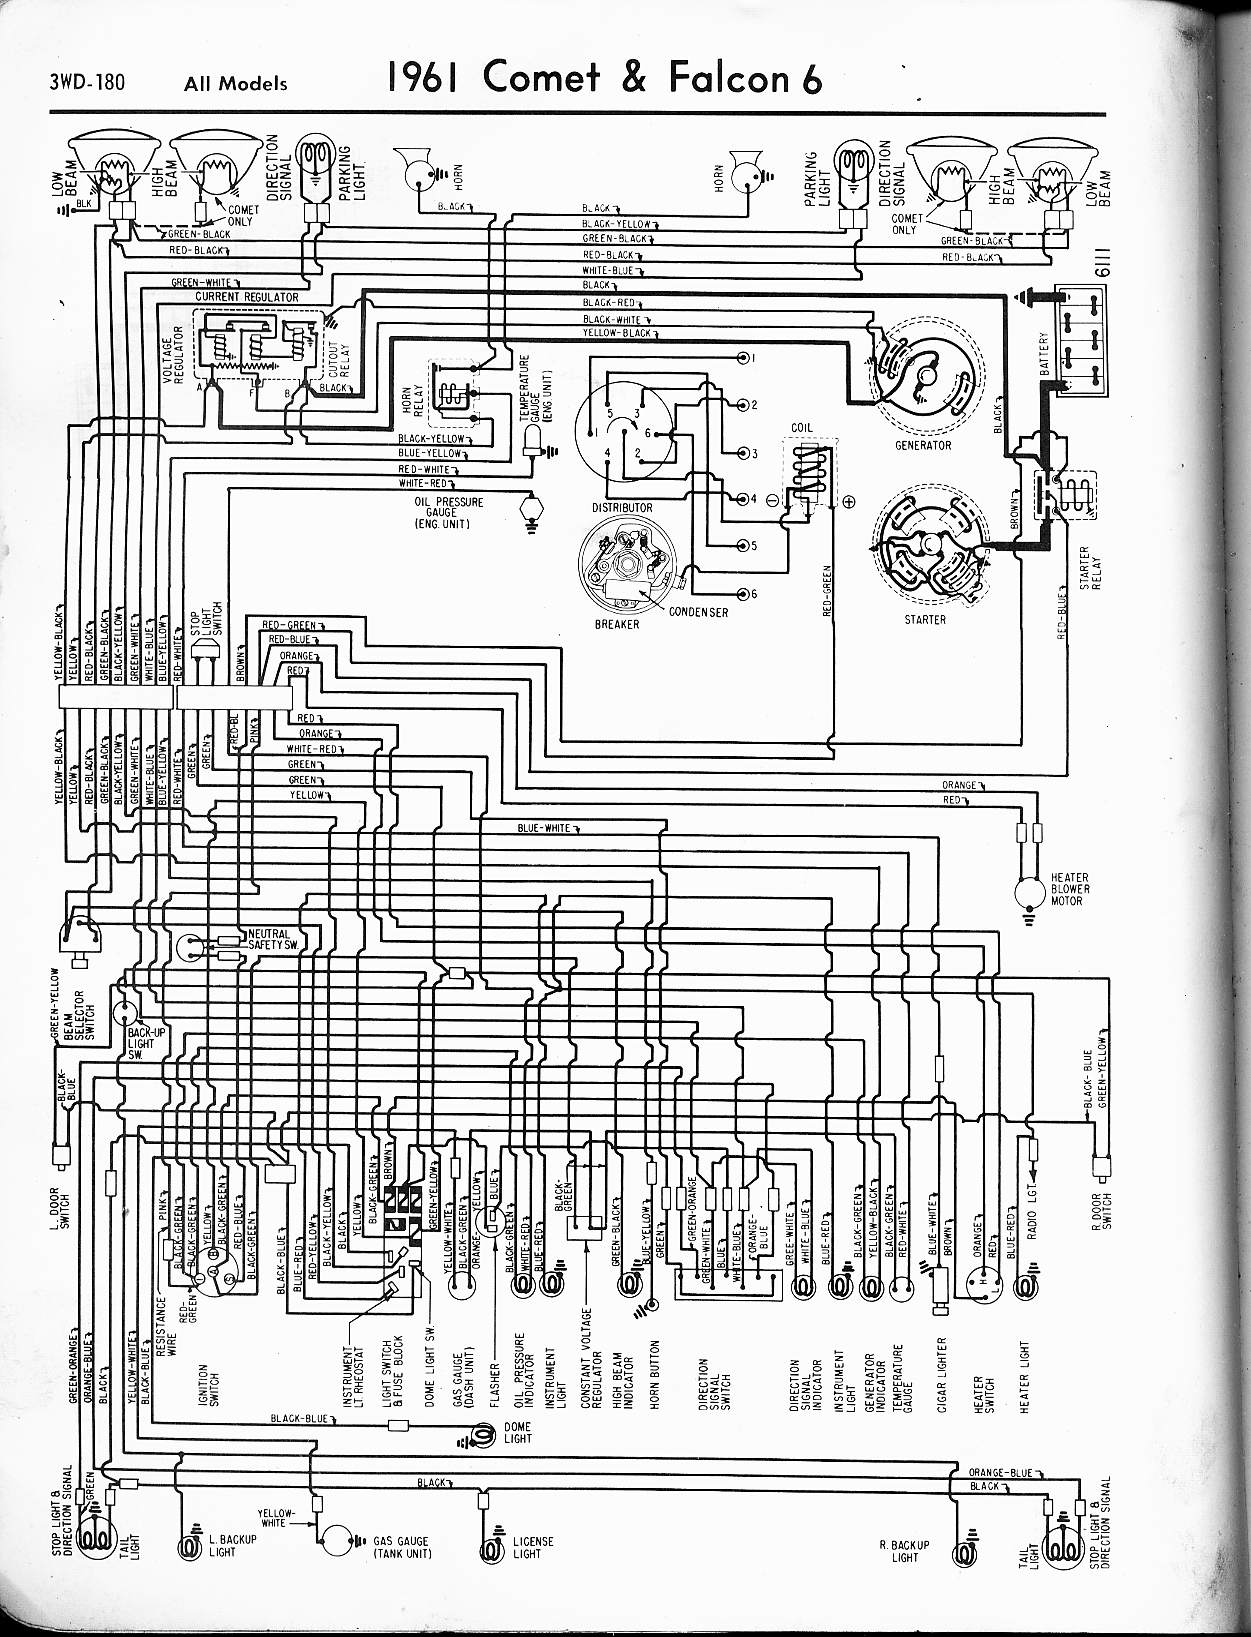 MWire5765 180 ba falcon tow bar wiring diagram towed vehicle wiring \u2022 wiring 2015 chevy towing mirrors wiring diagram at n-0.co